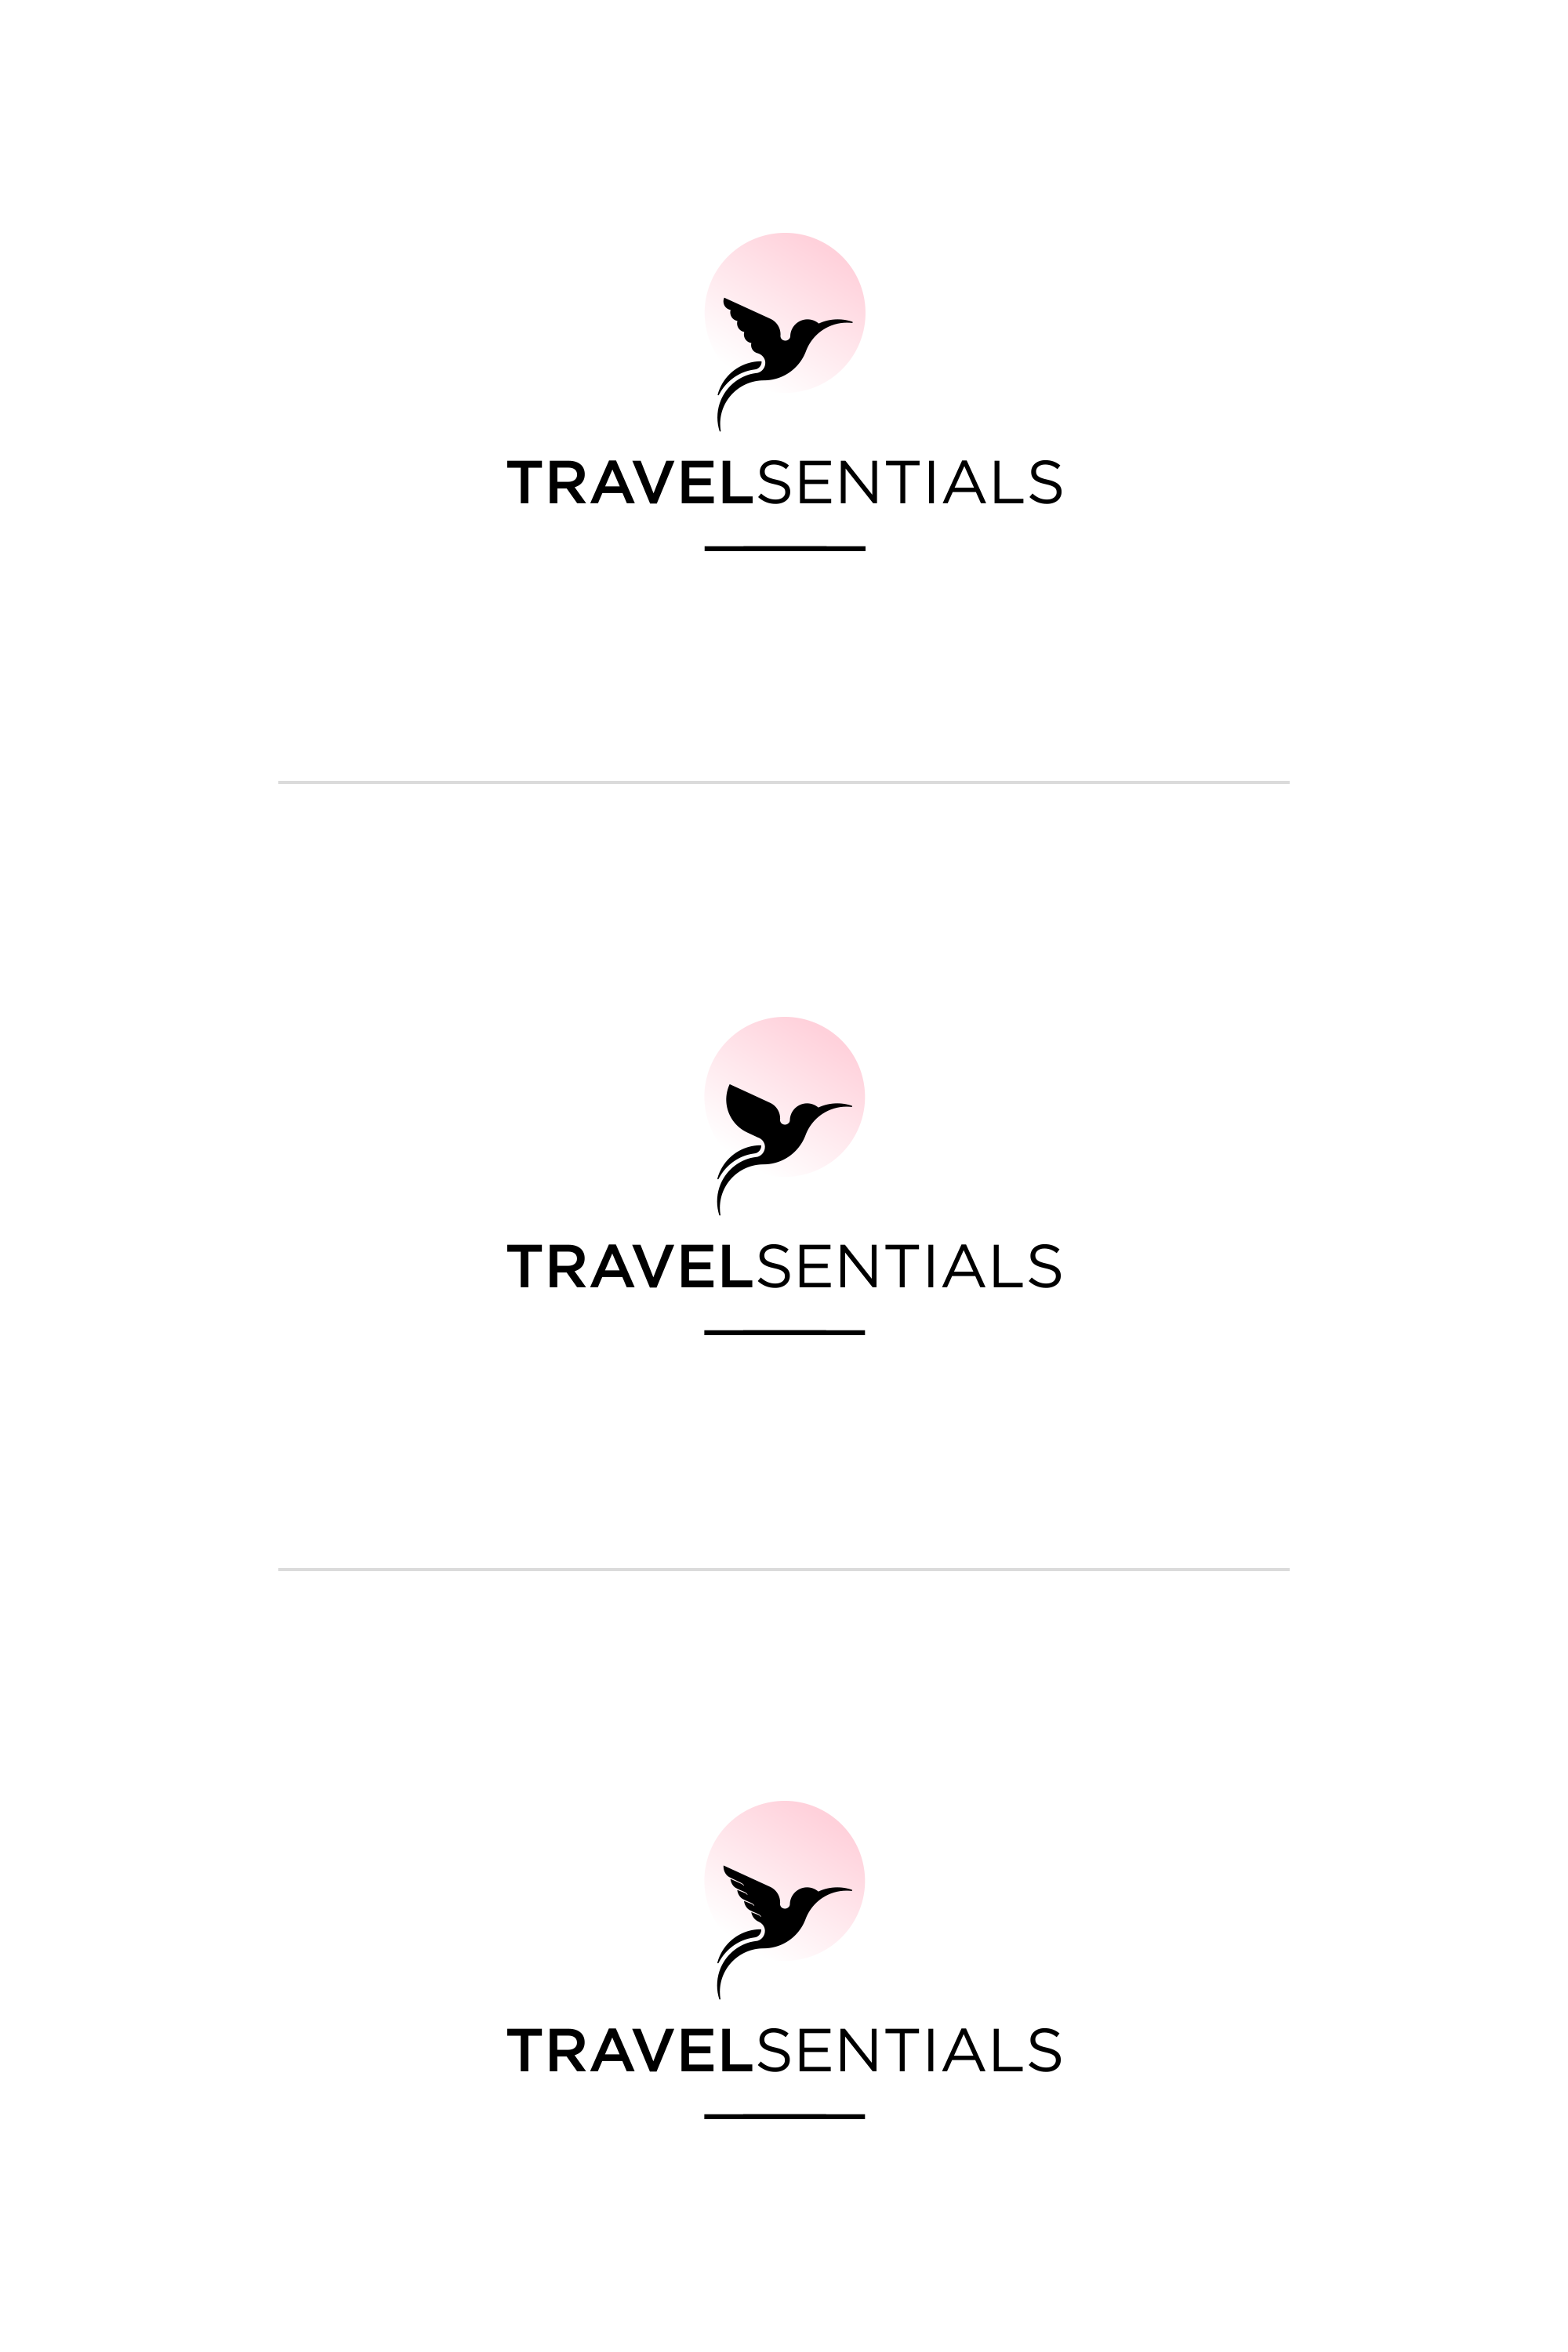 Logo Design - TRAVELSENTIALS